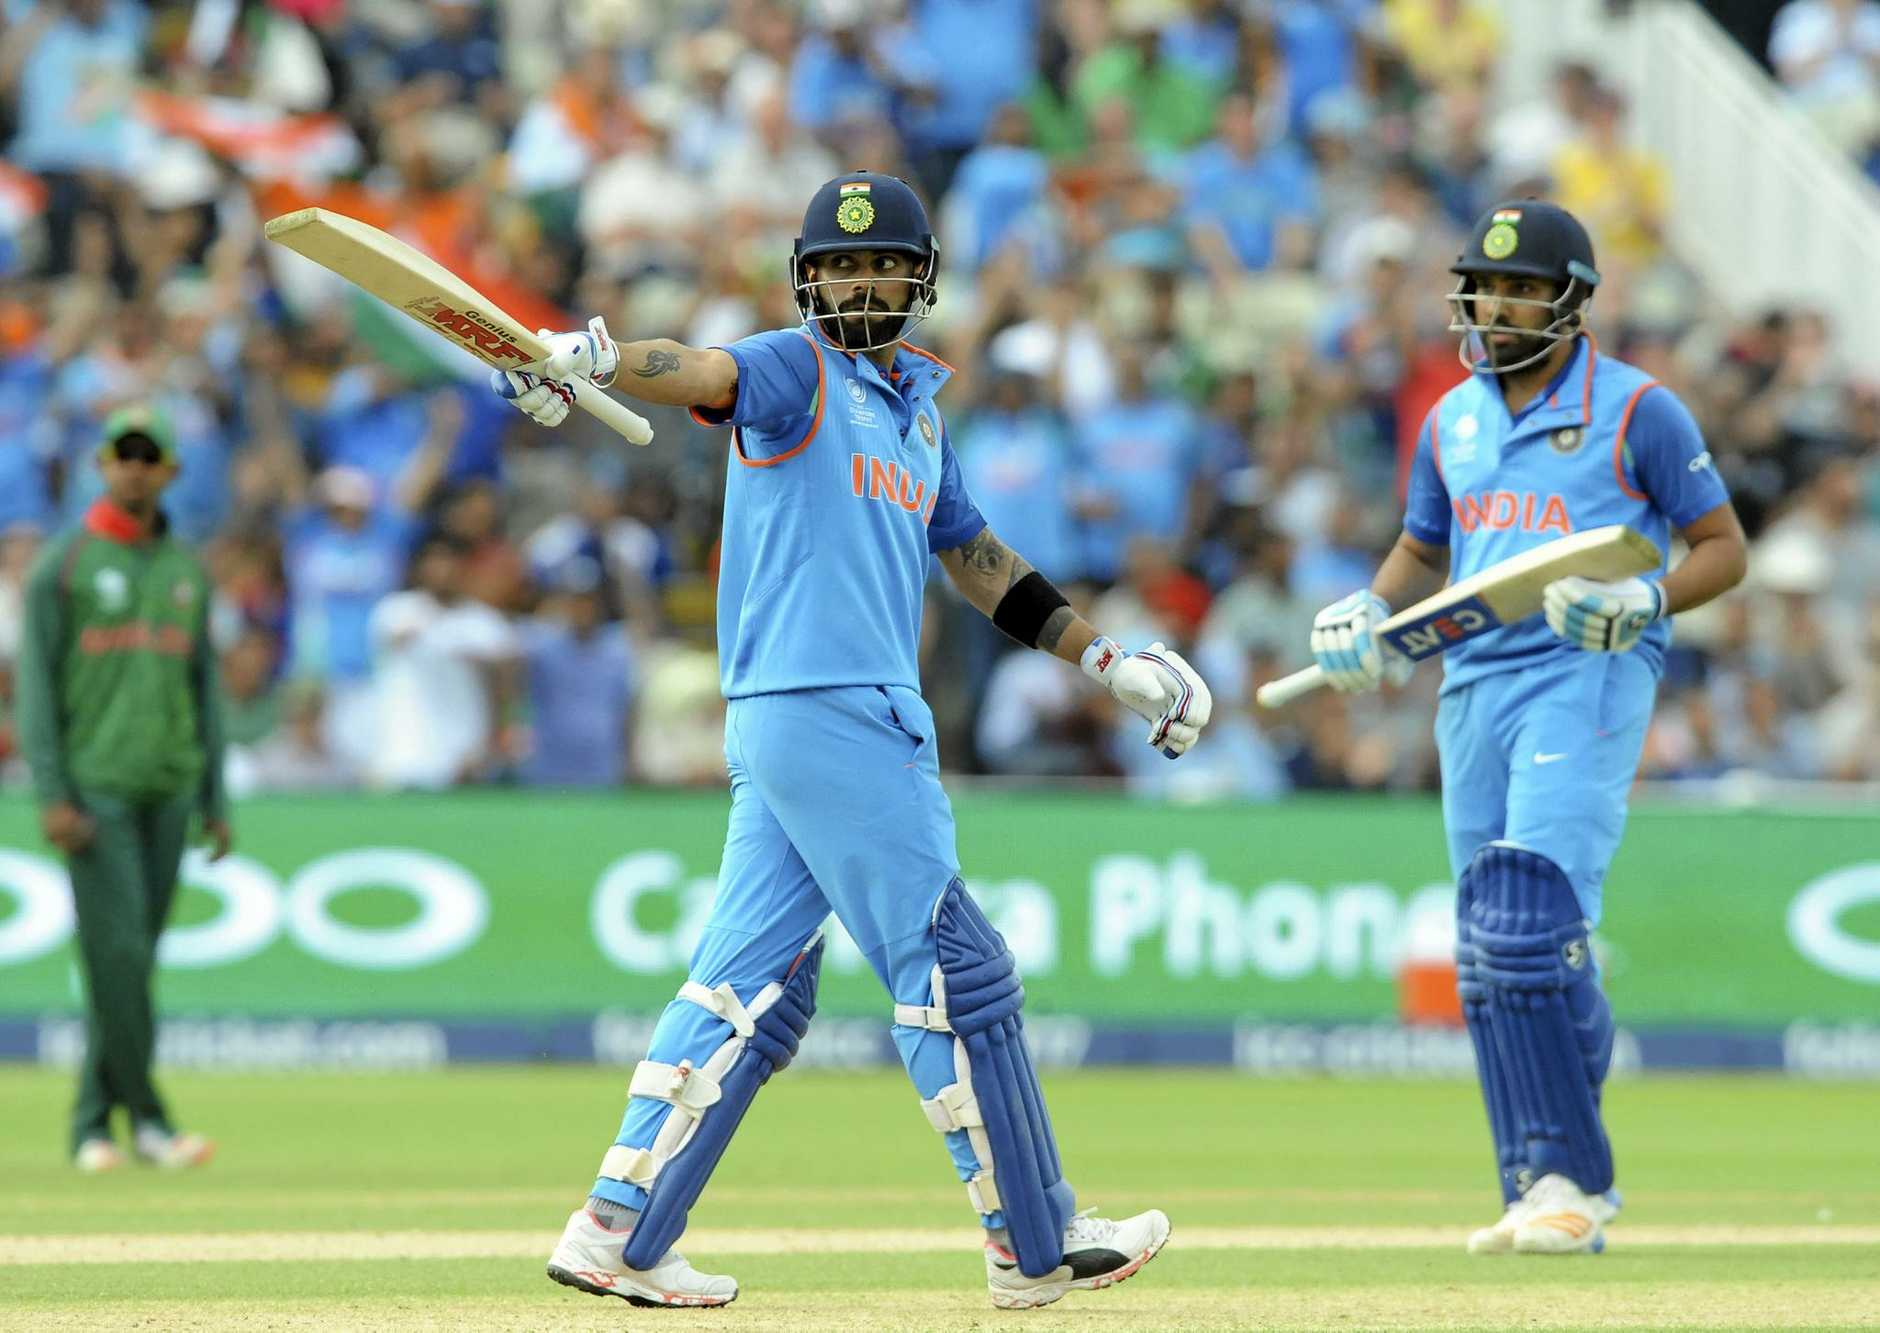 India captain Virat Kohli marks a half-century in the ICC Champions Trophy semi-final against Bangladesh.